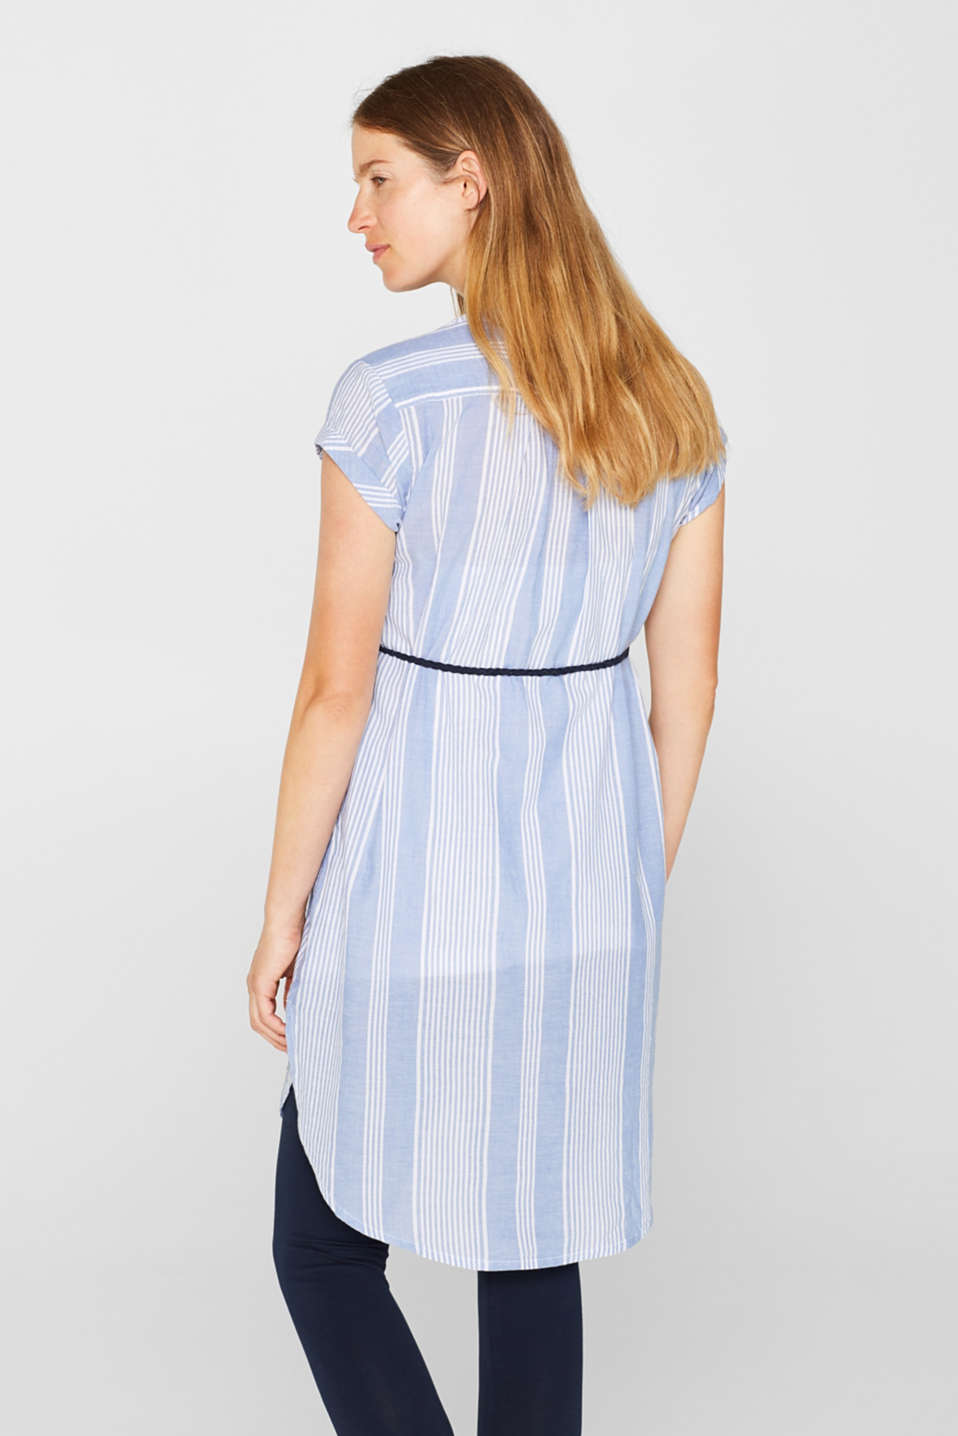 Tunic dress with a belt, 100% cotton, LCOFF WHITE, detail image number 3